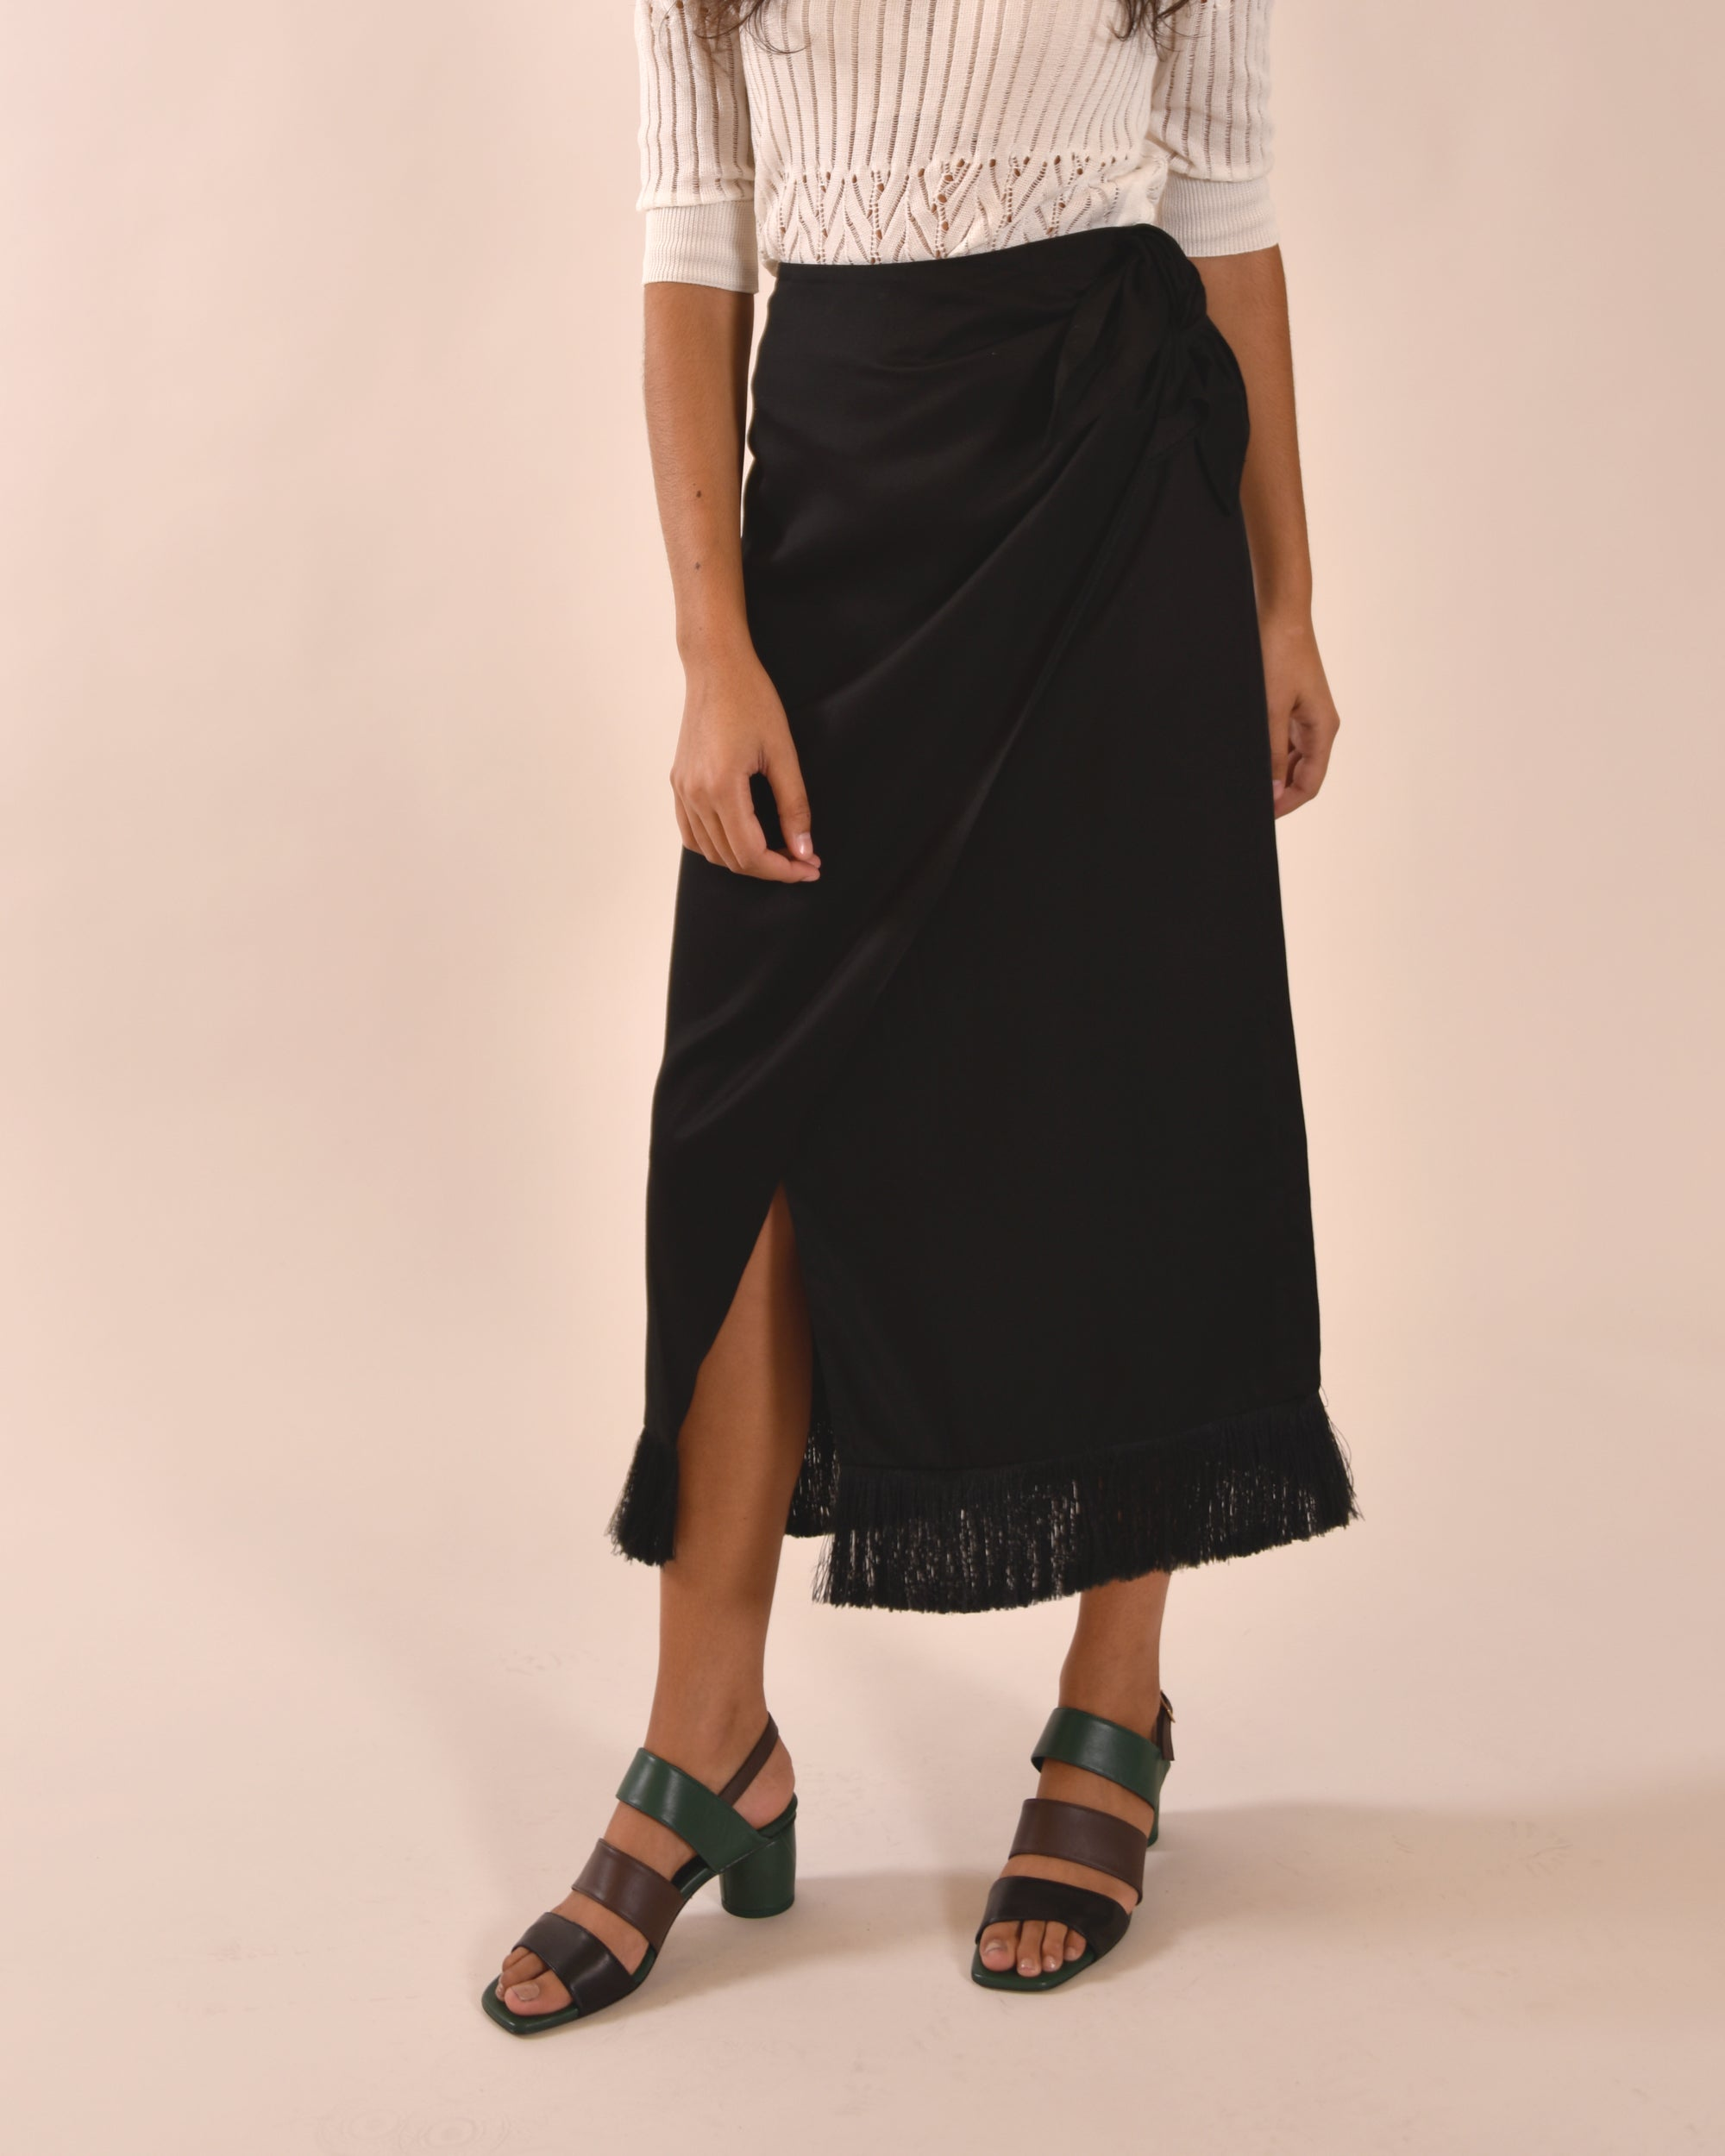 MOTHER OF PEARL Holly Wrap Skirt / Black